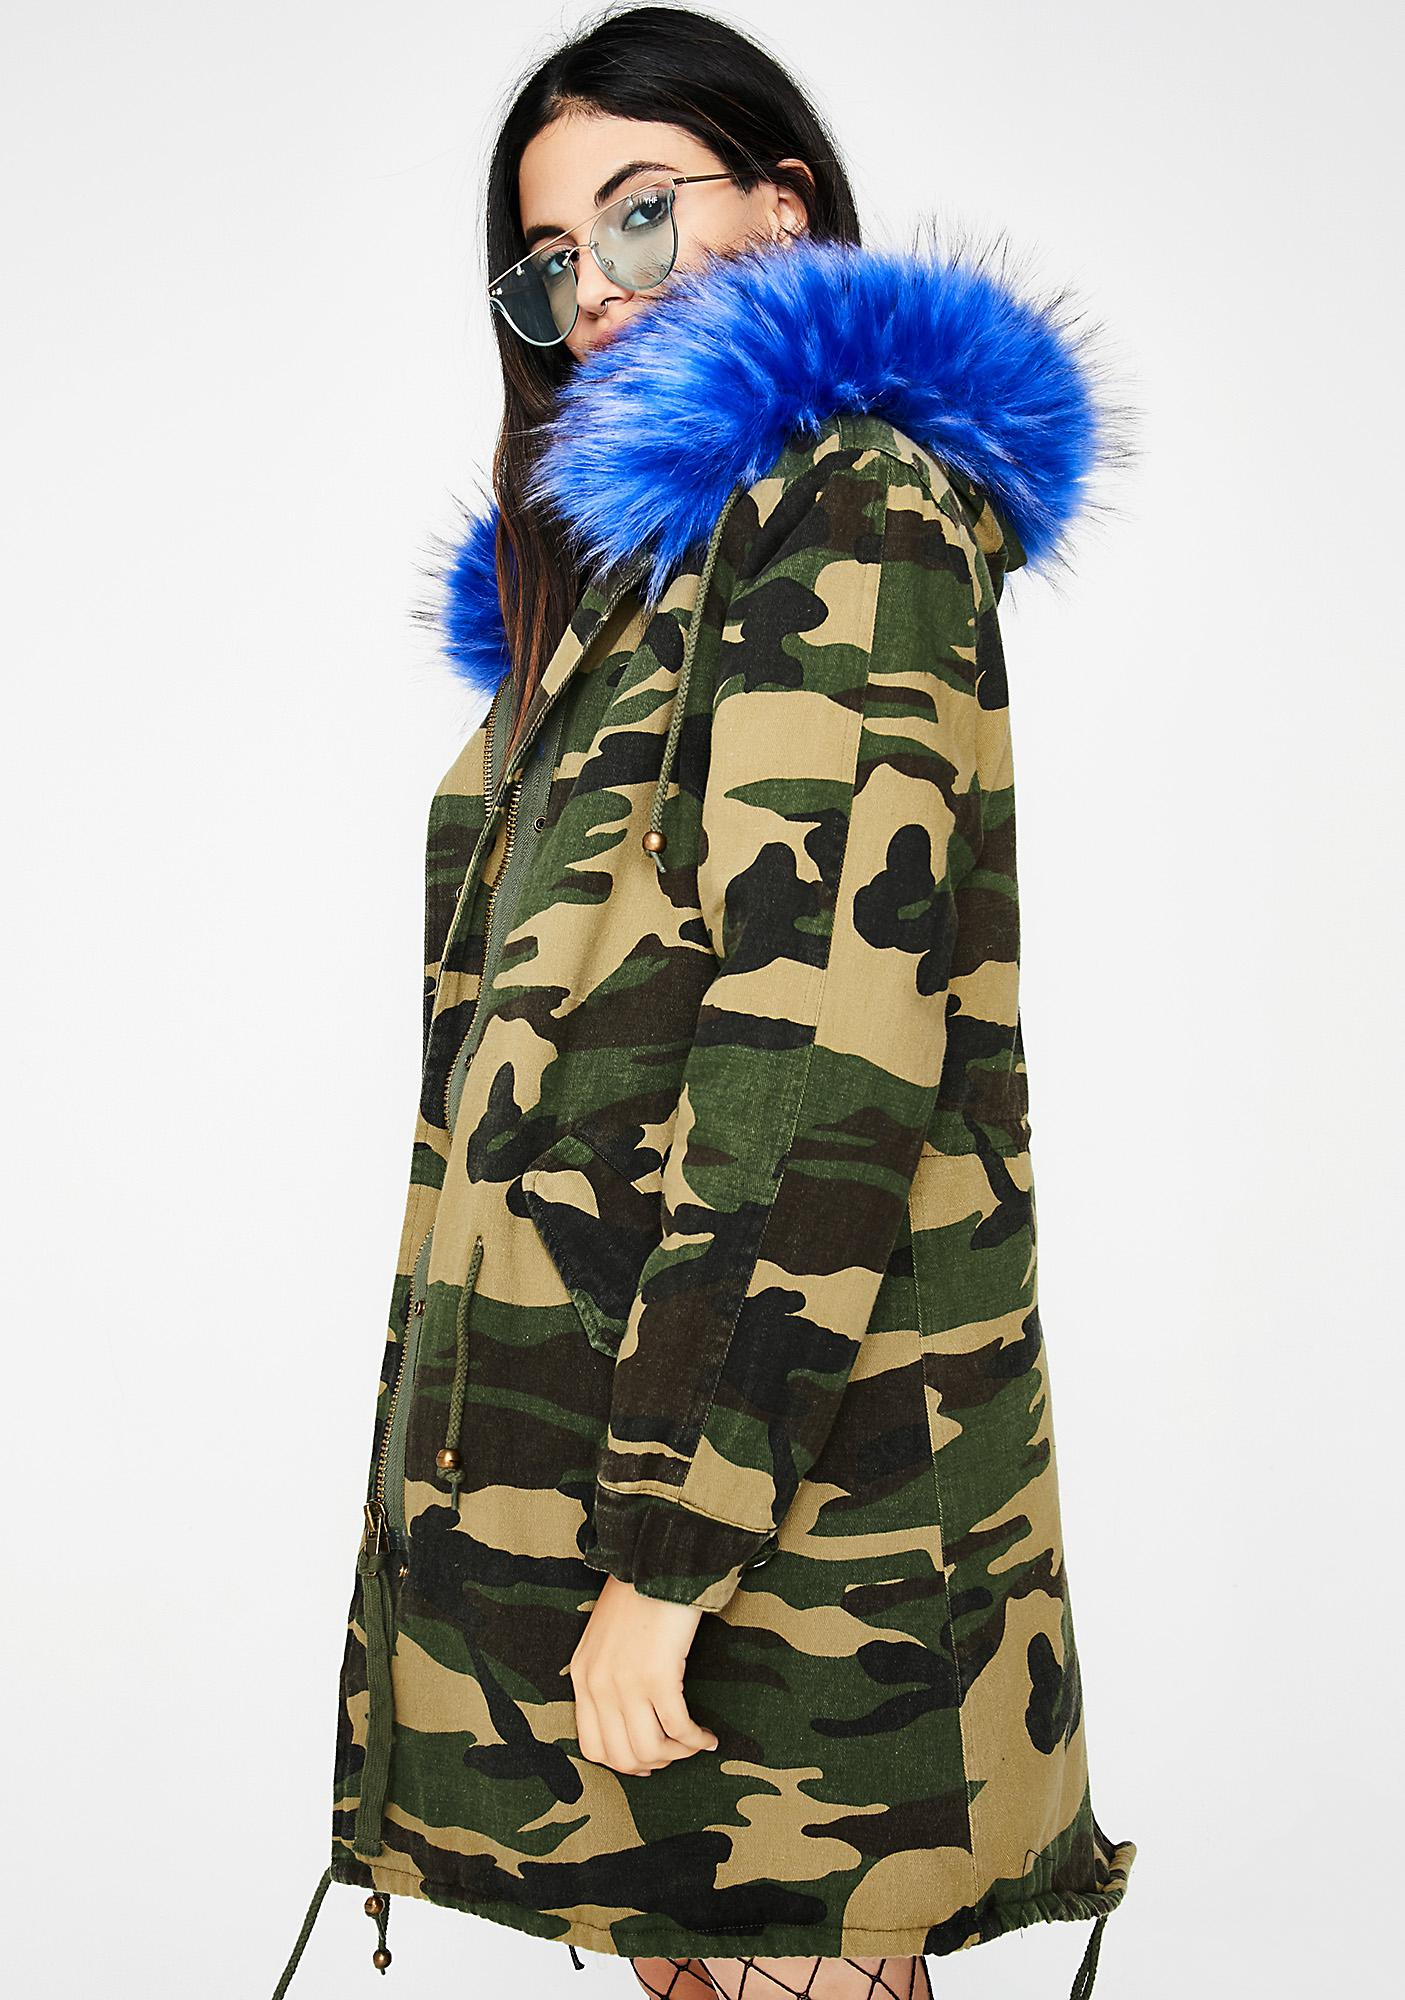 Camo Ruffled Feathers Parka